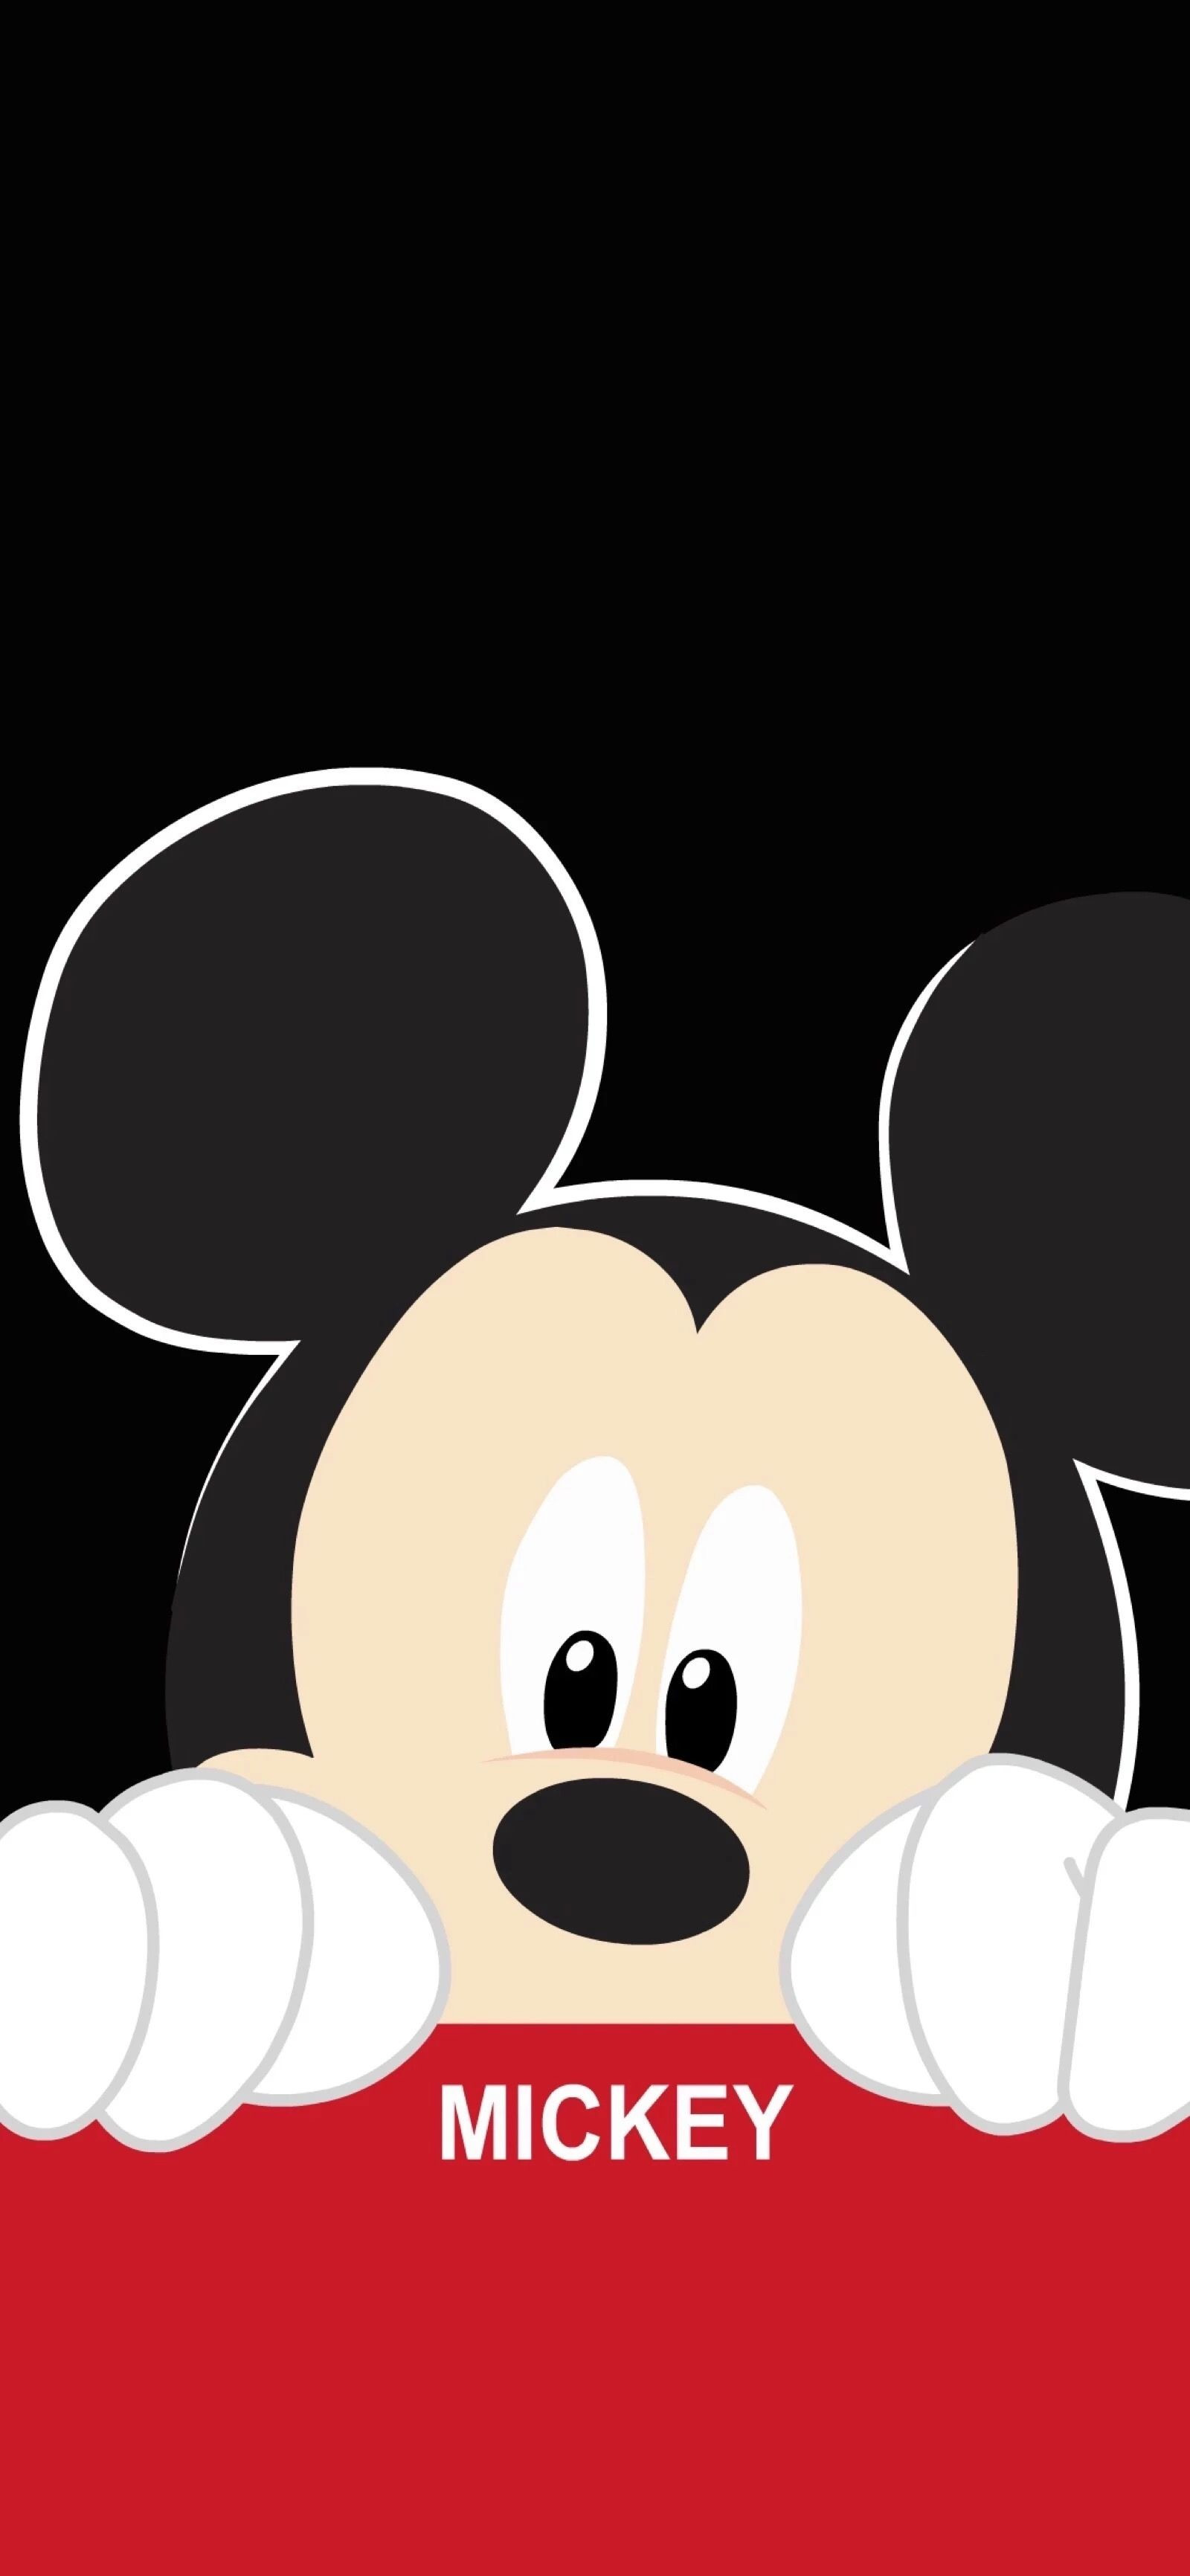 Mickey Mouse Wallpaper For Iphone 72 Images